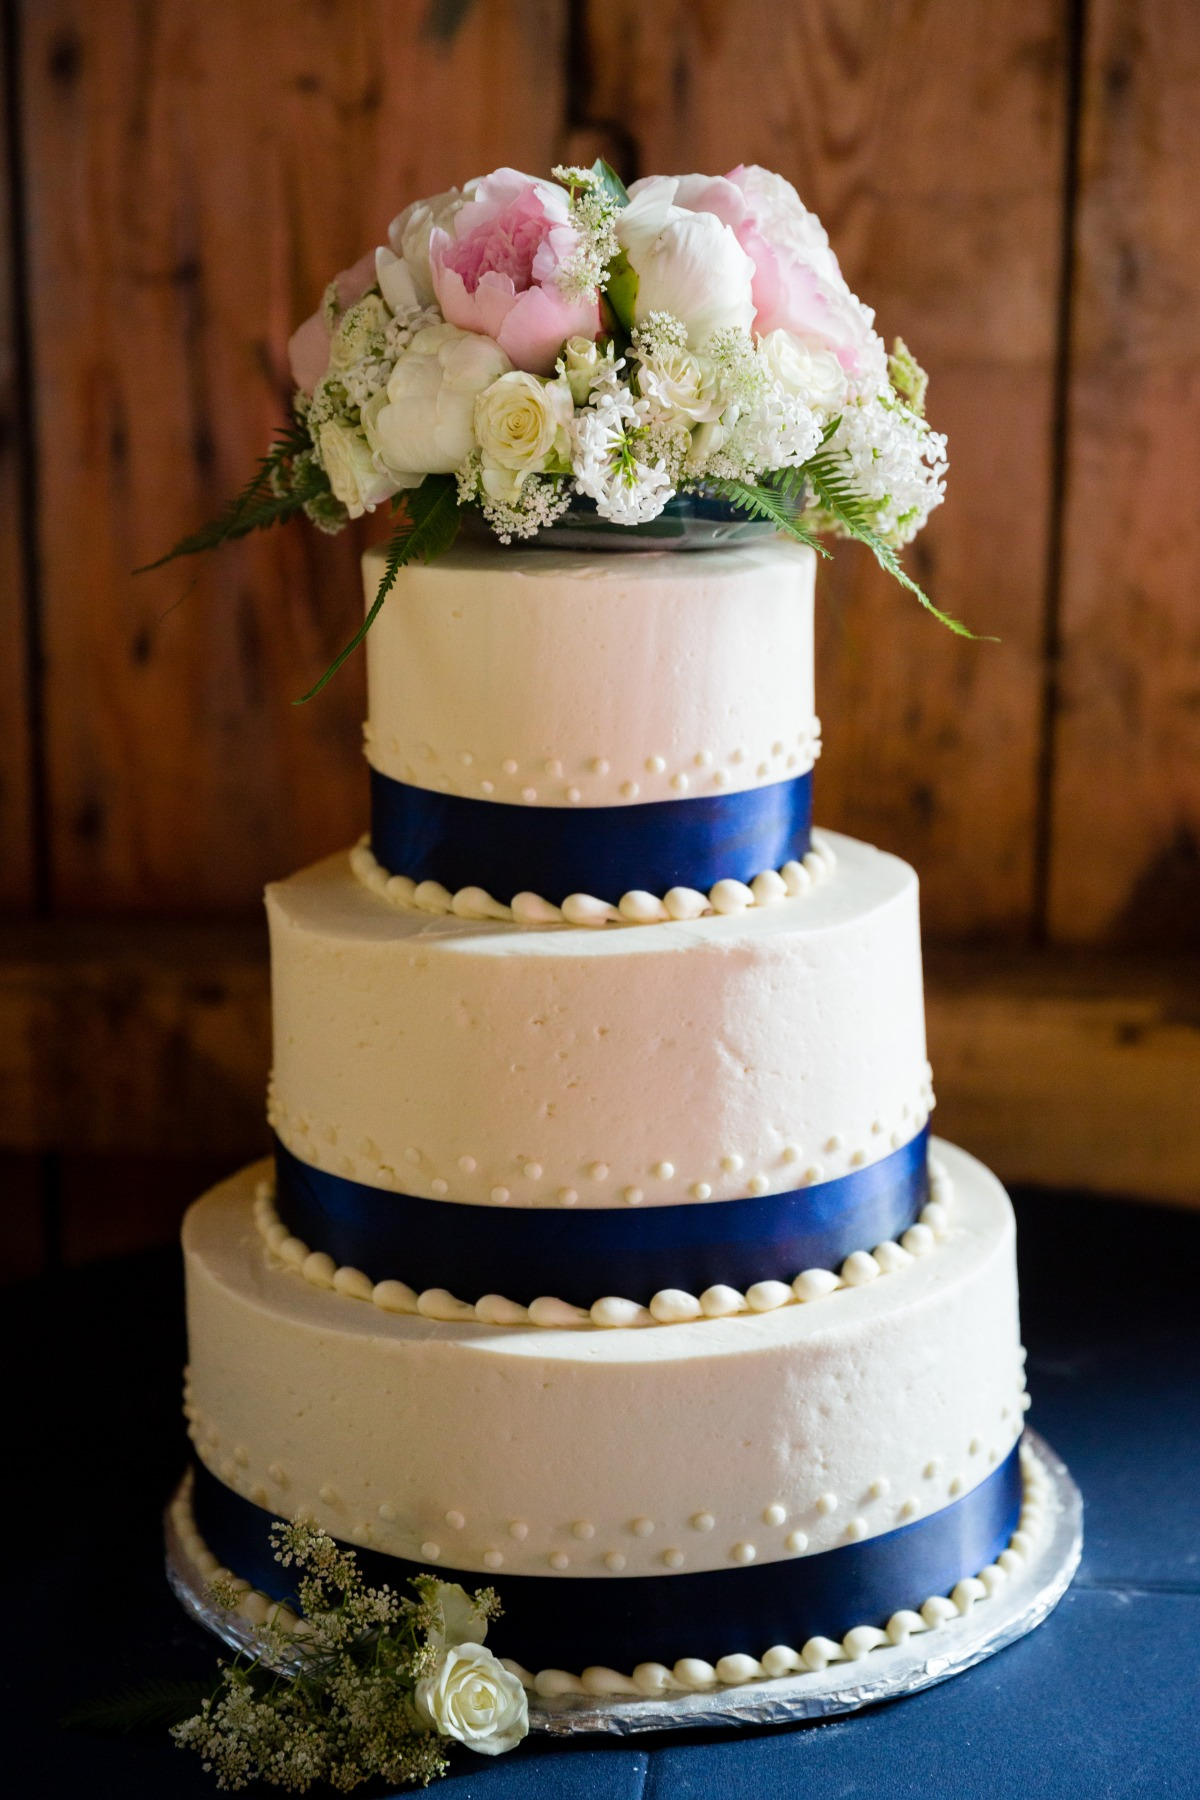 flanagan-farm-wedding-cake